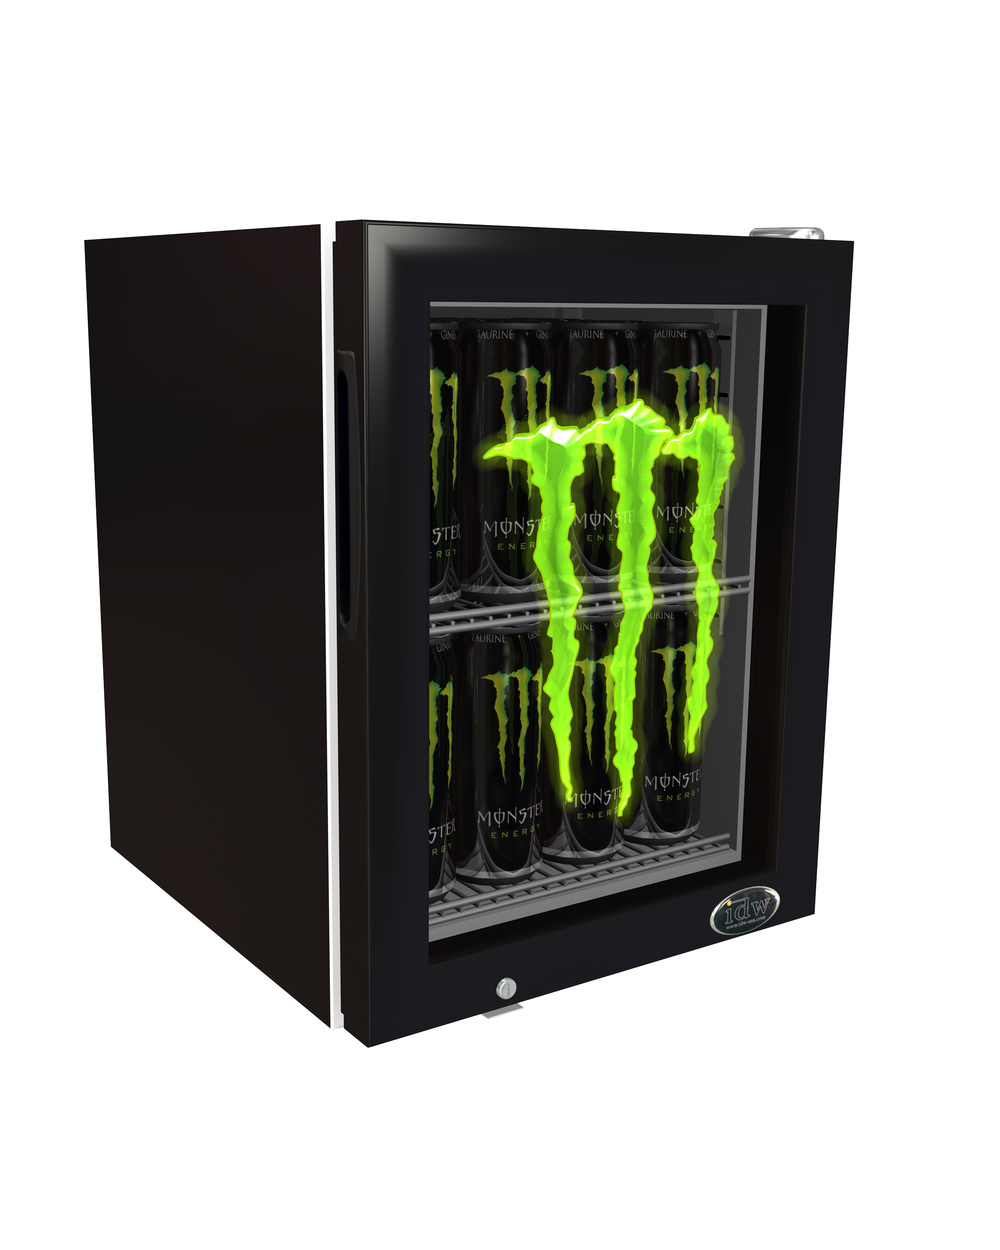 GS 1 Countertop Cooler IDW Innovative DisplayWorks